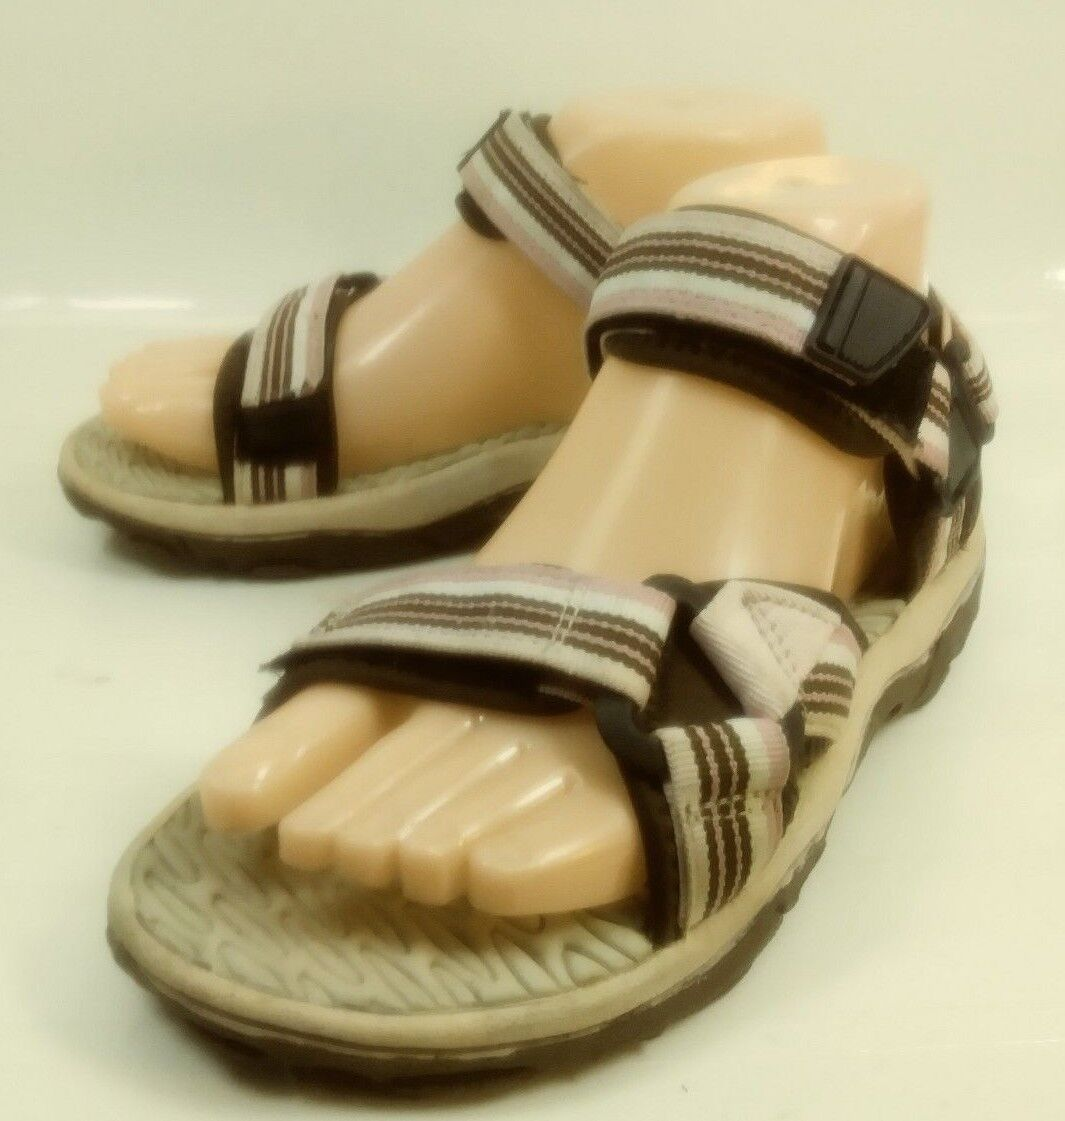 Cabela's Wos Sandals Shoes US 6M Brown Walking Pink Textile Hook Loop Walking Brown Hiking 276 faa00a